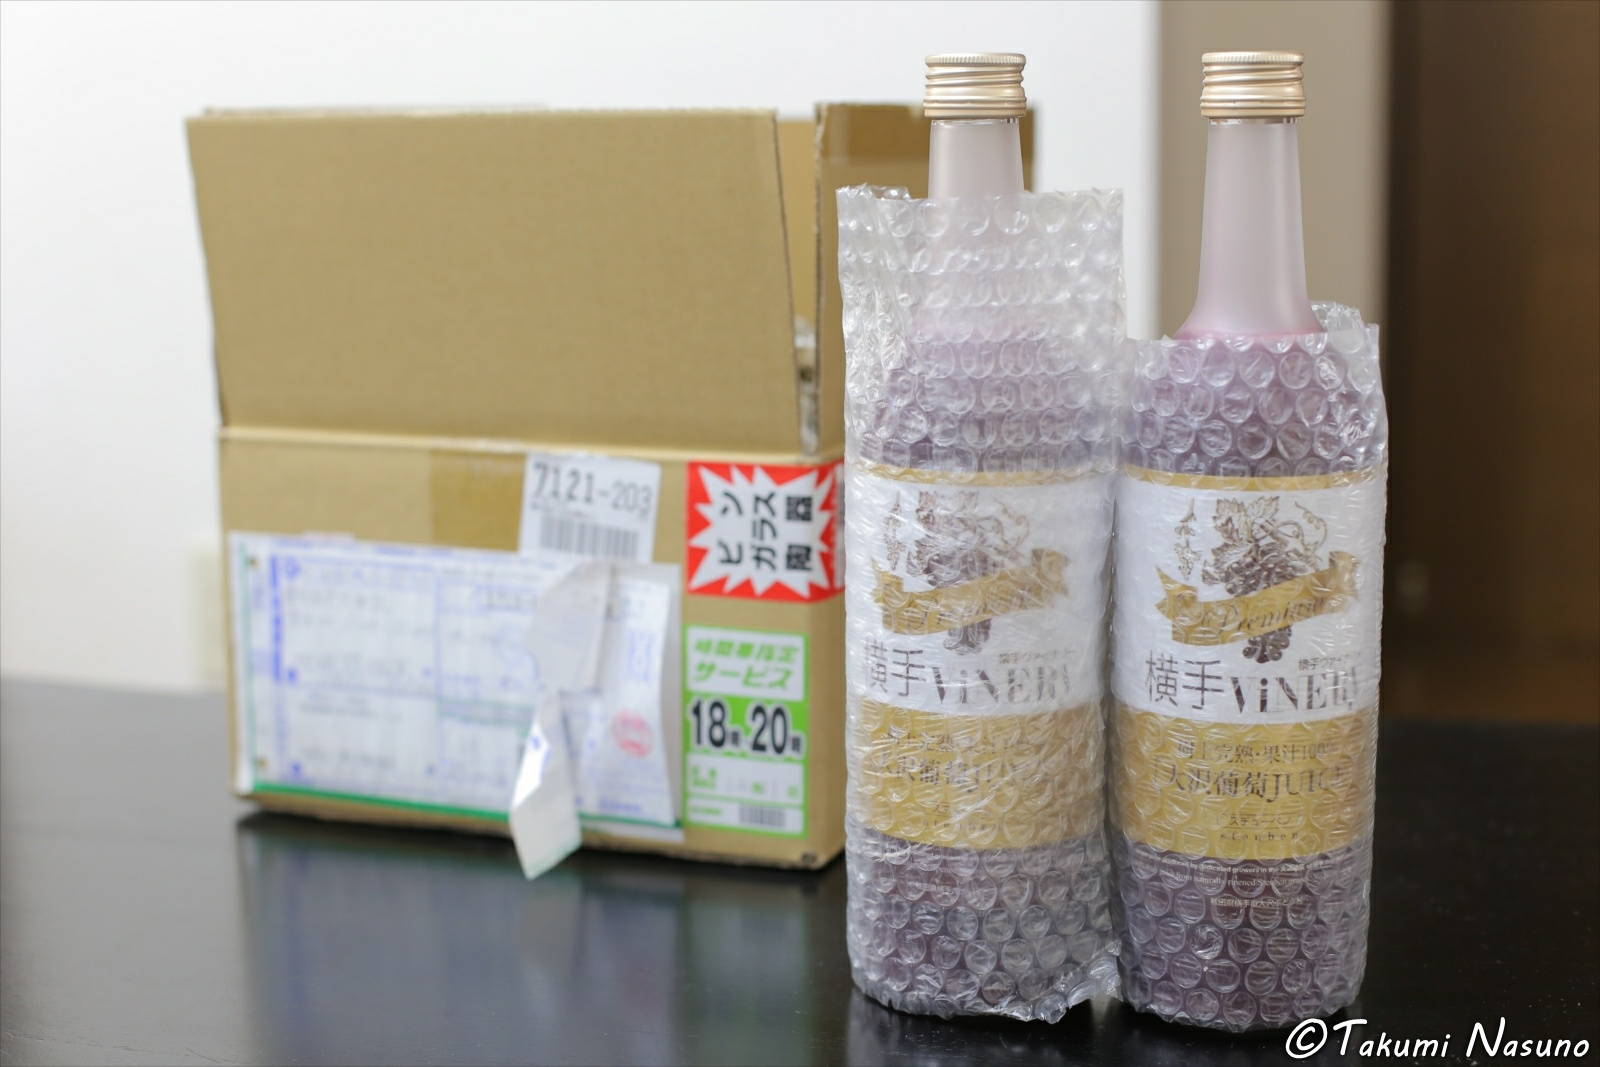 Osawa Grape Premium Juice From Yokote ViNERY opened